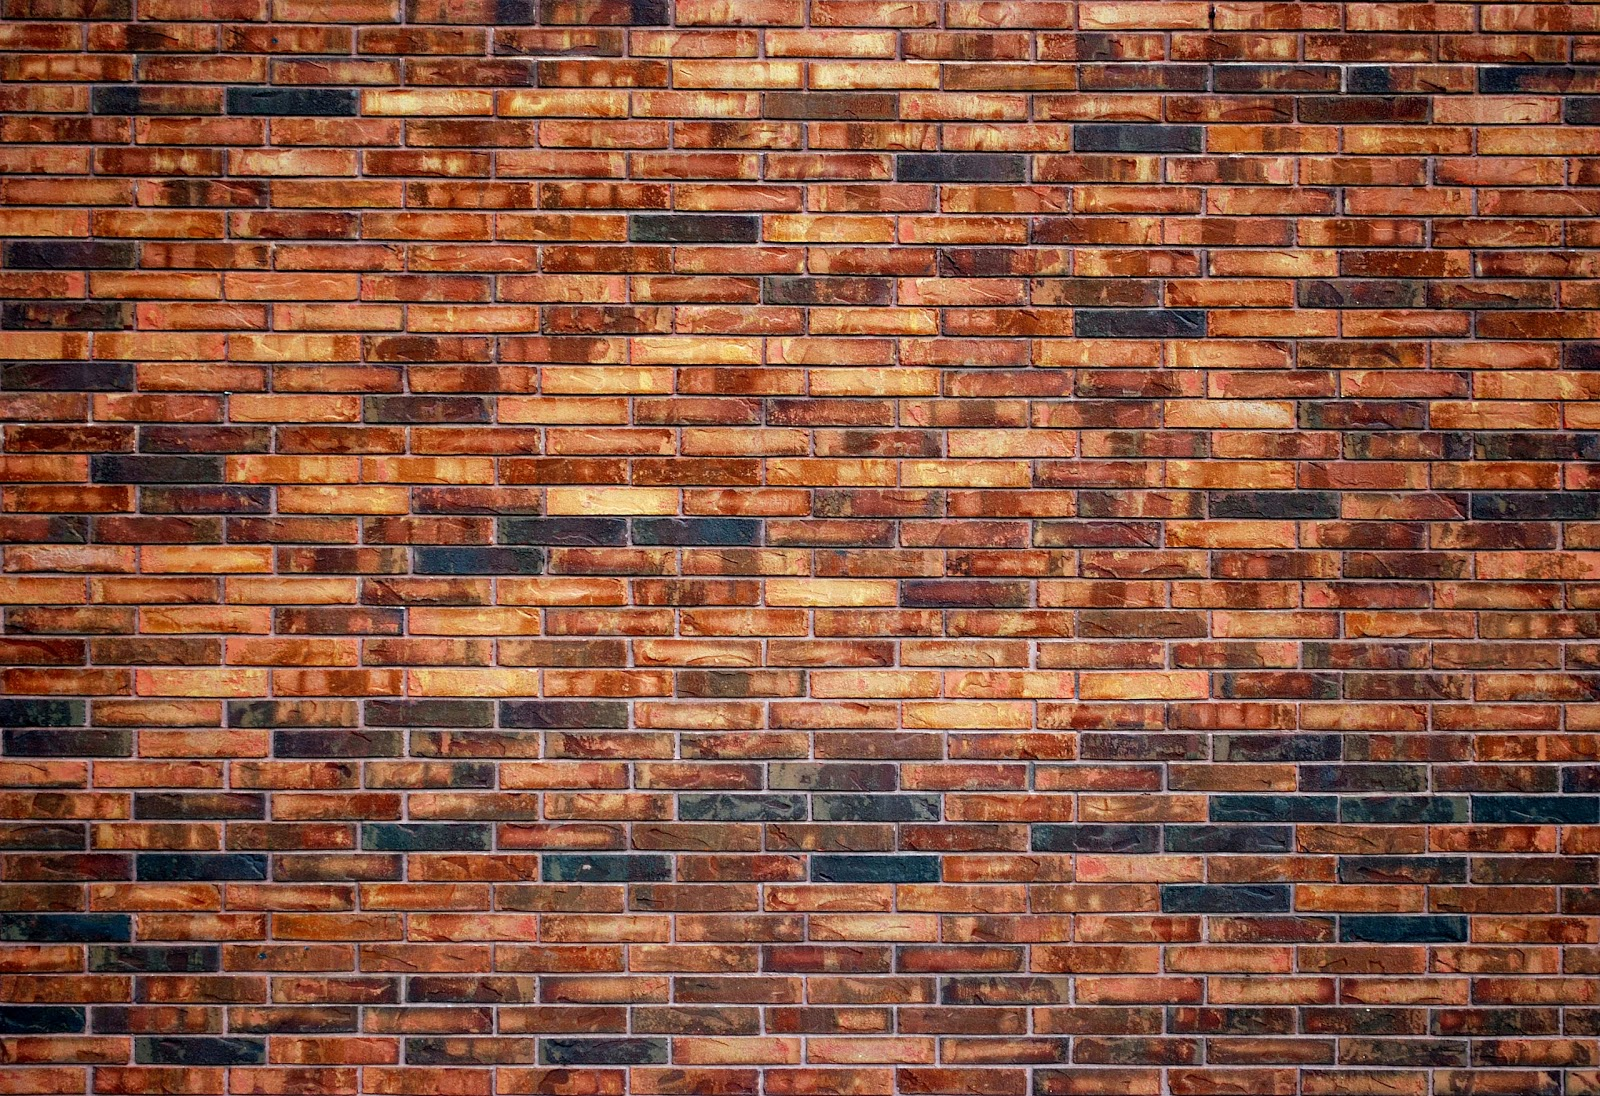 Brick Vector Picture: Brick Texture Wallpaper